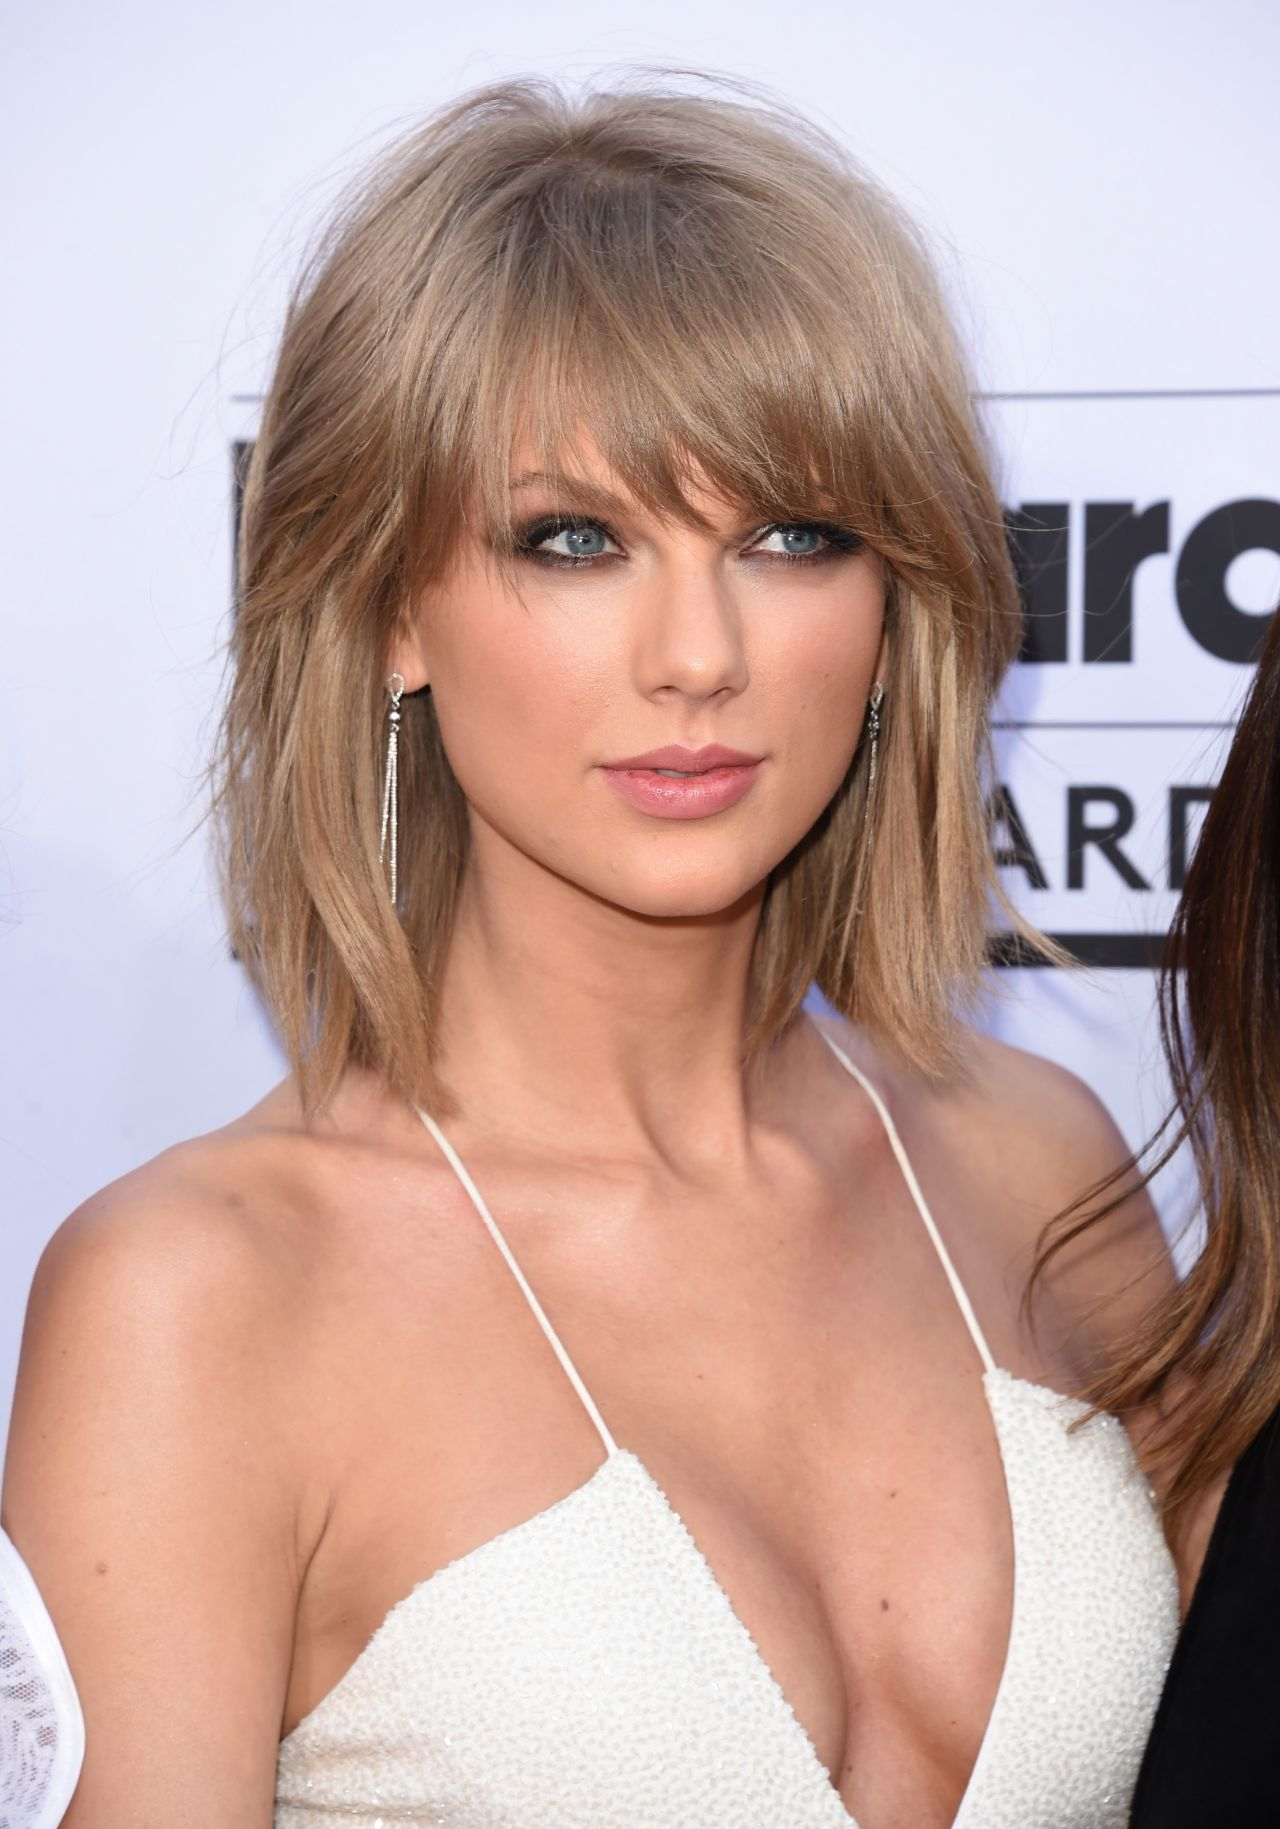 Taylor Swift Pics, Music Collection